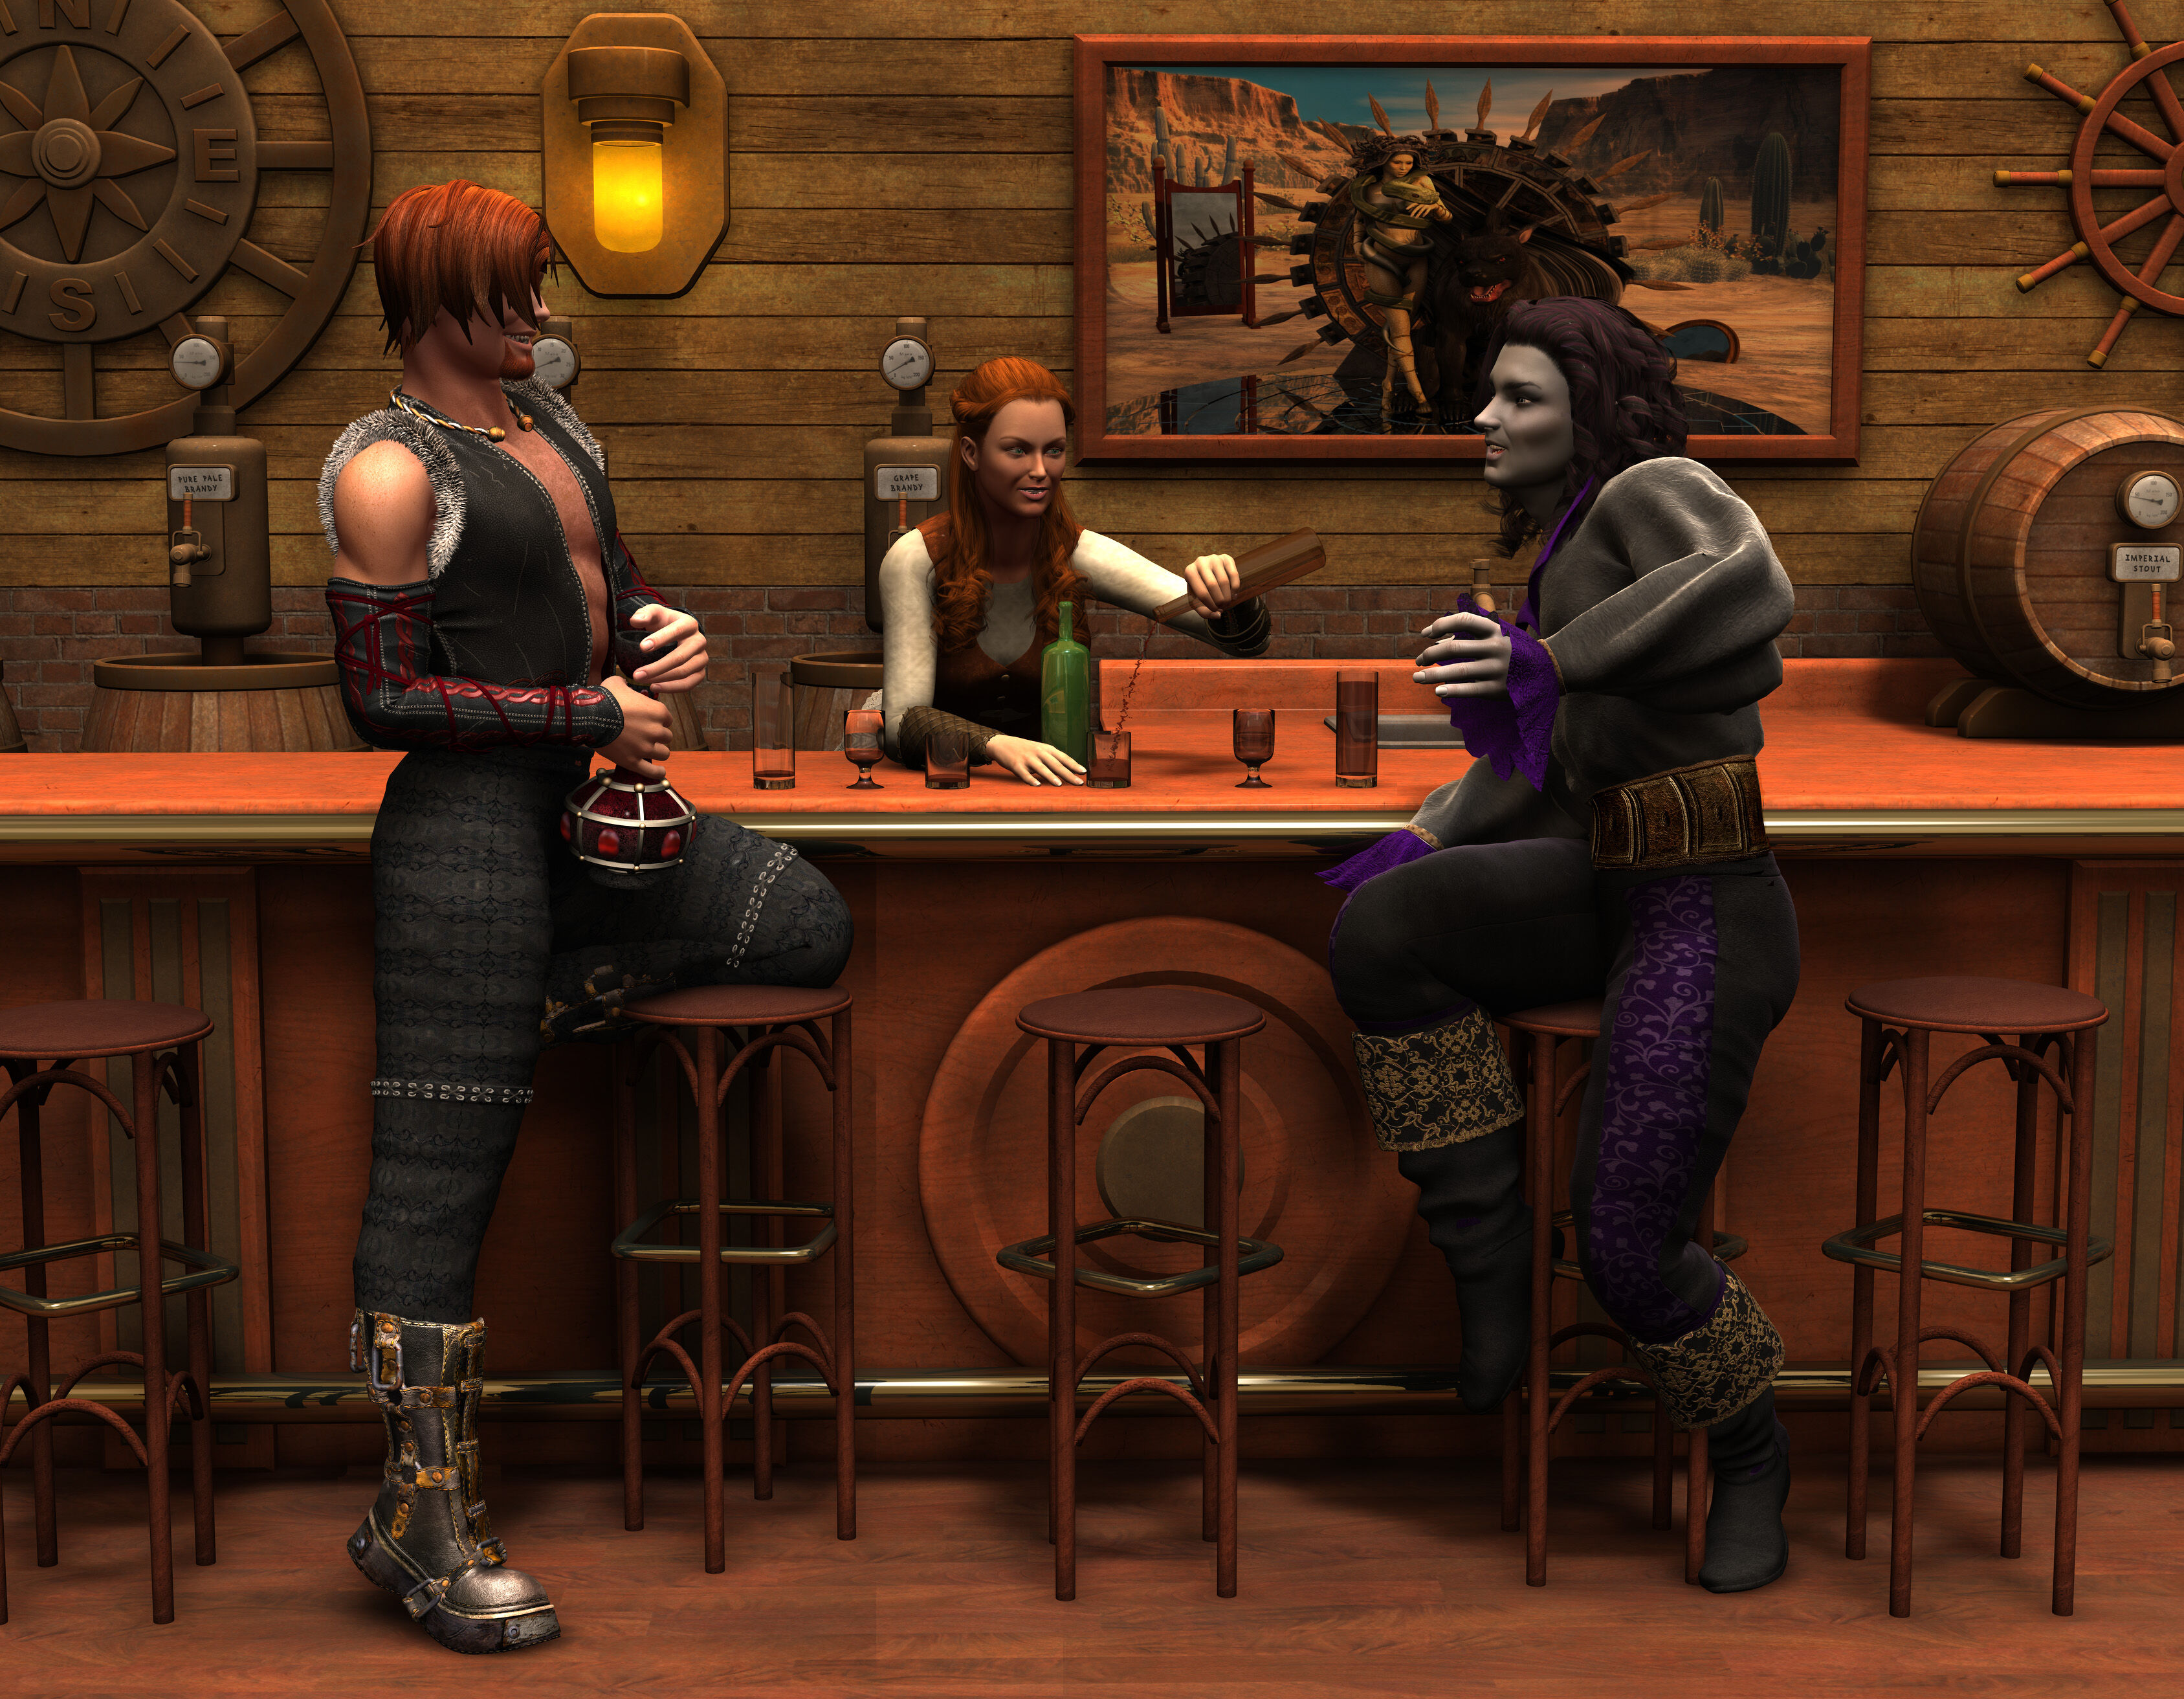 Image: Two dudes drinking and a female bartender pouring.